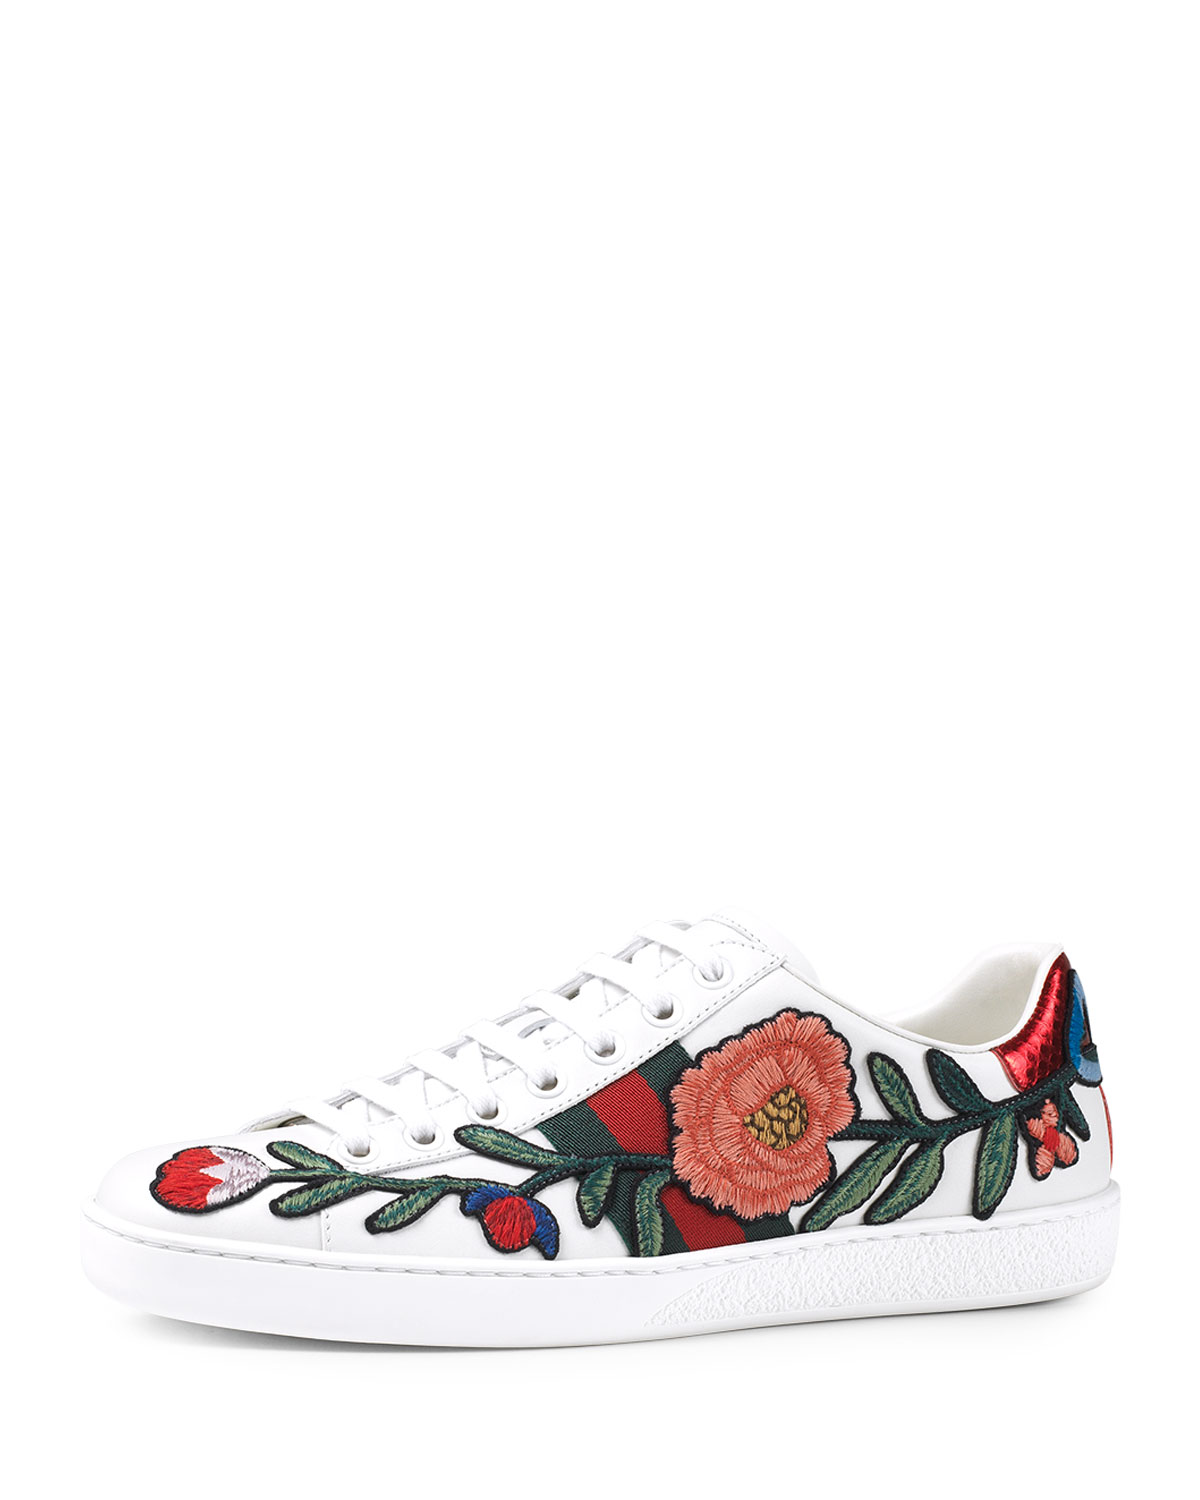 aed0a84a6eb5 Gucci Floral Embroidered Sneaker